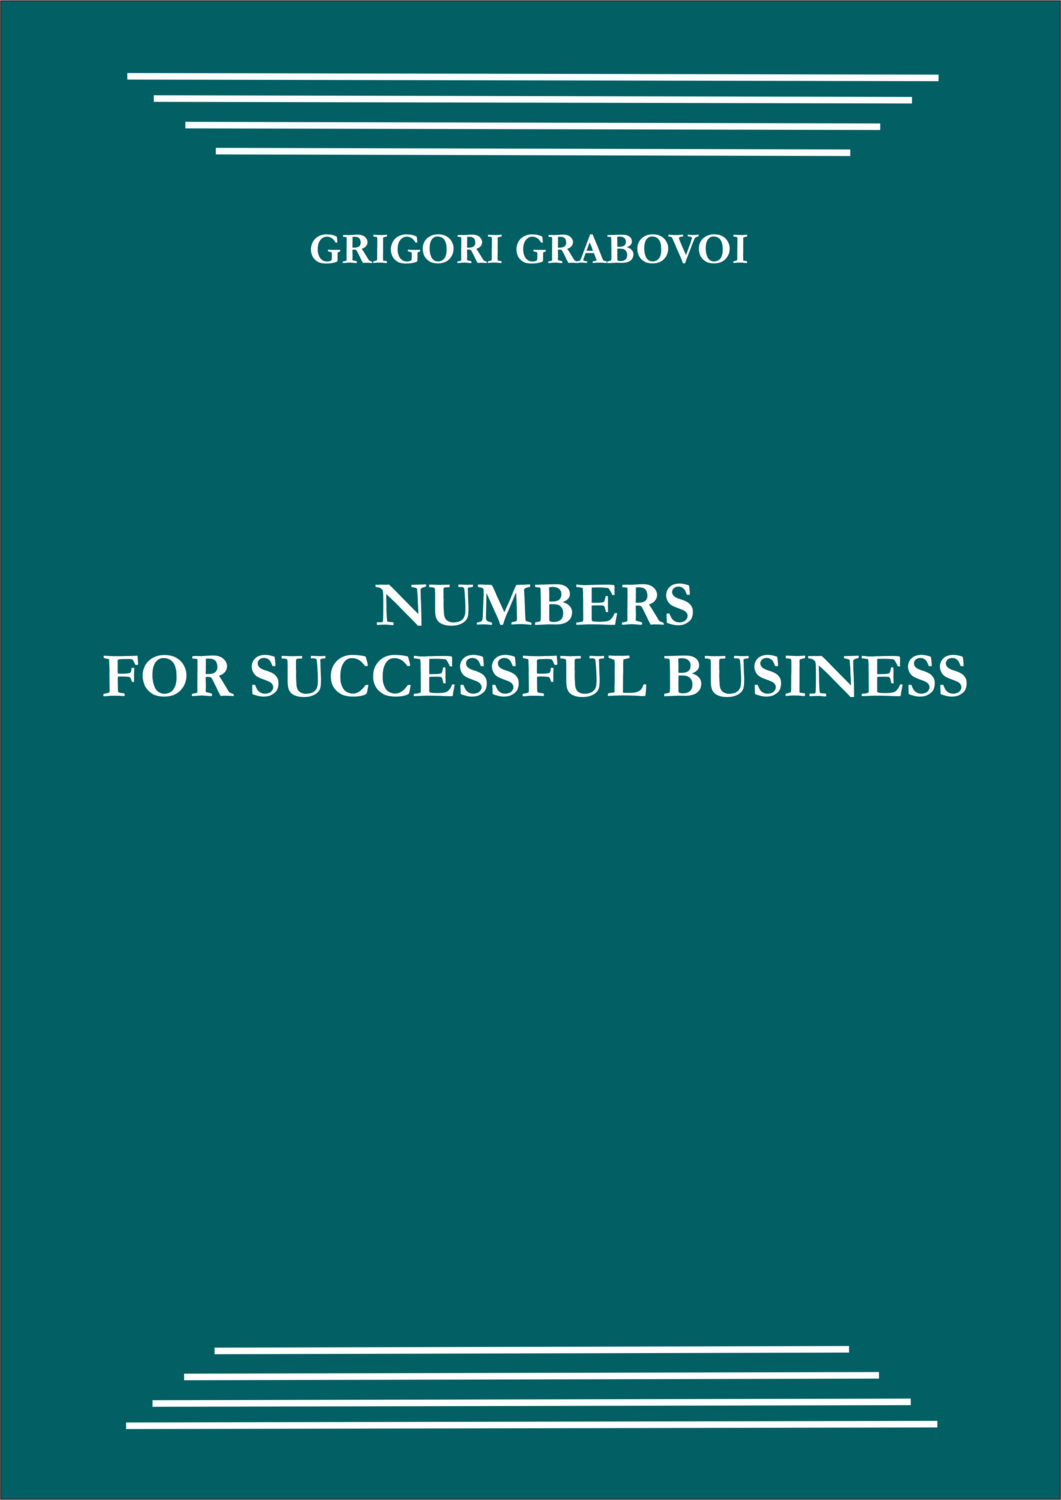 Numbers for successful business